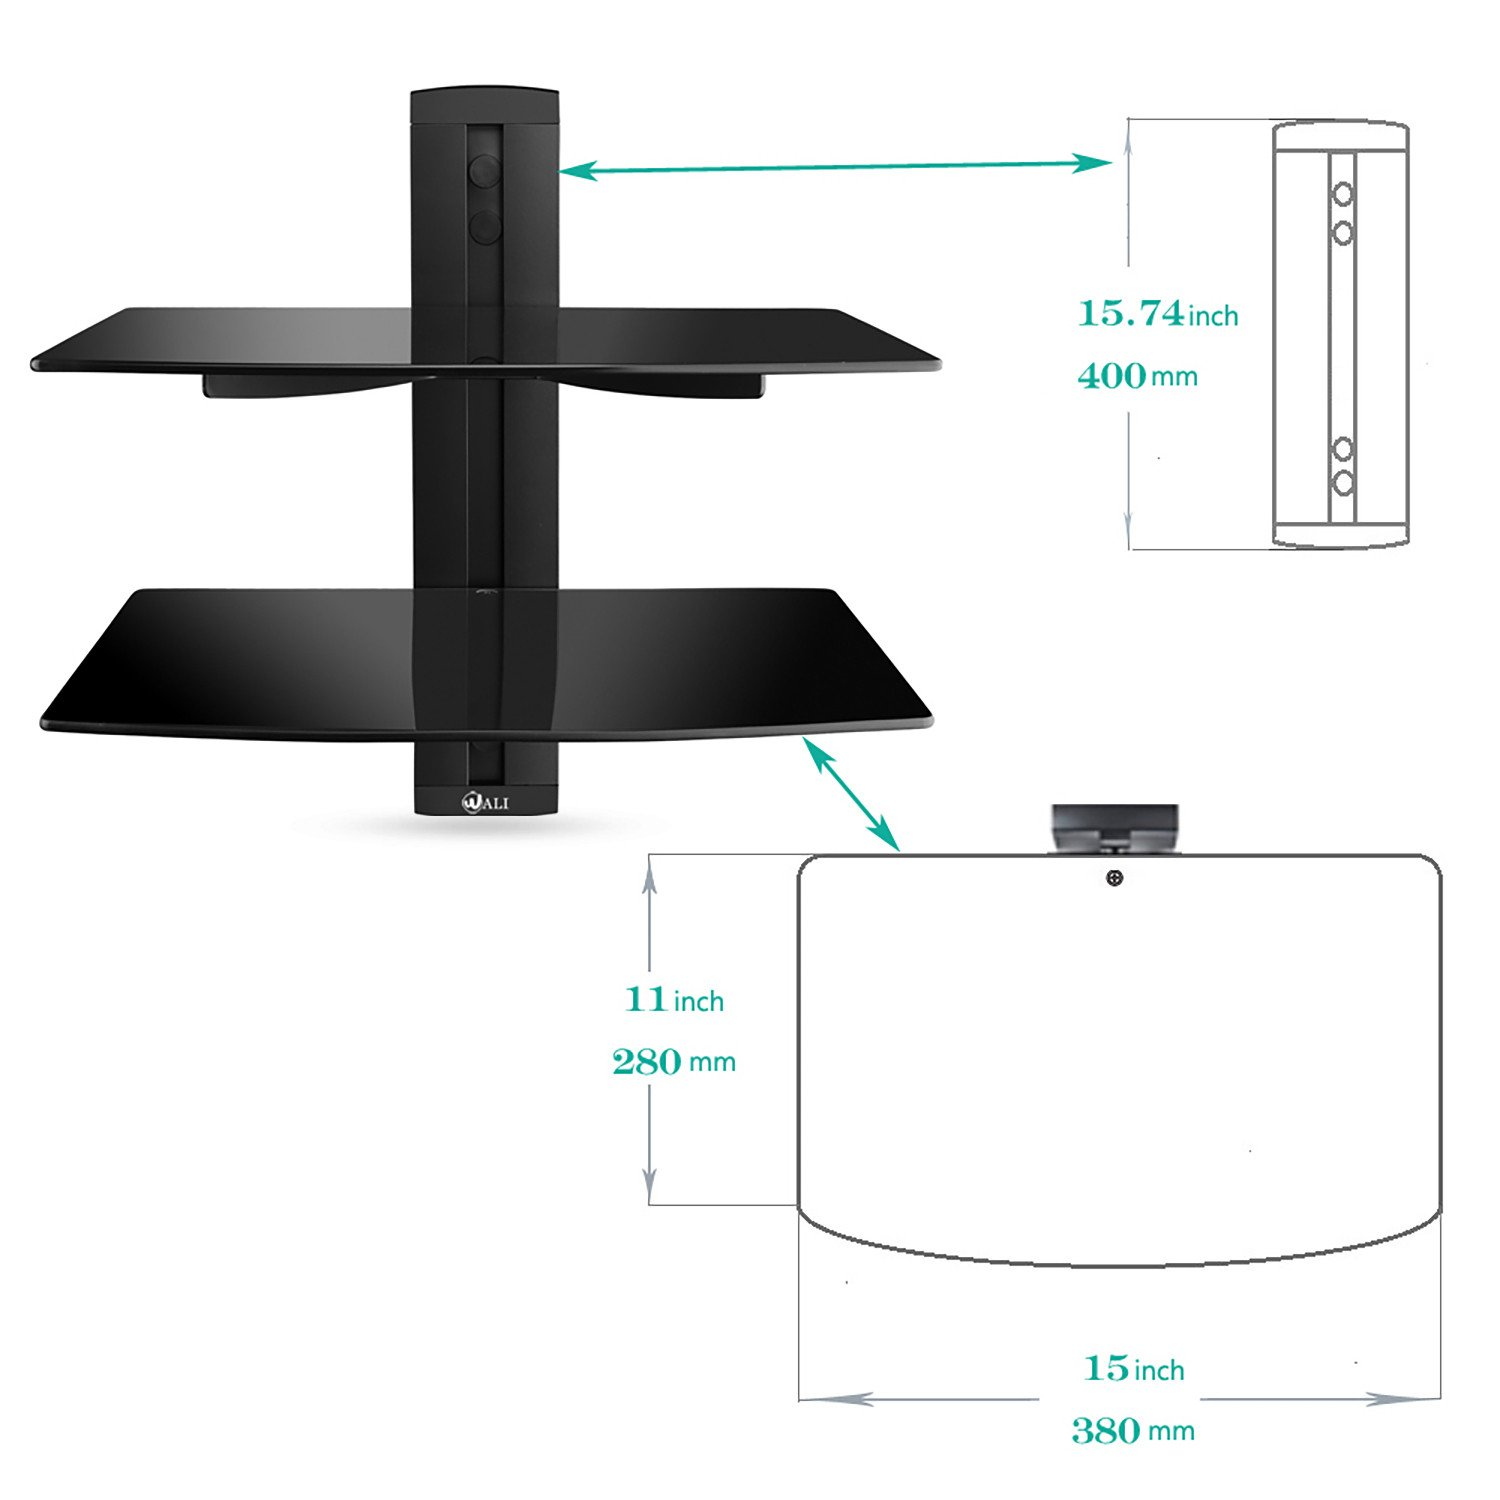 wali floating wall mounted shelf with strengthened tempered glasses installation instructions glass for dvd players cable boxes games consoles ikea lack screws white wrought iron